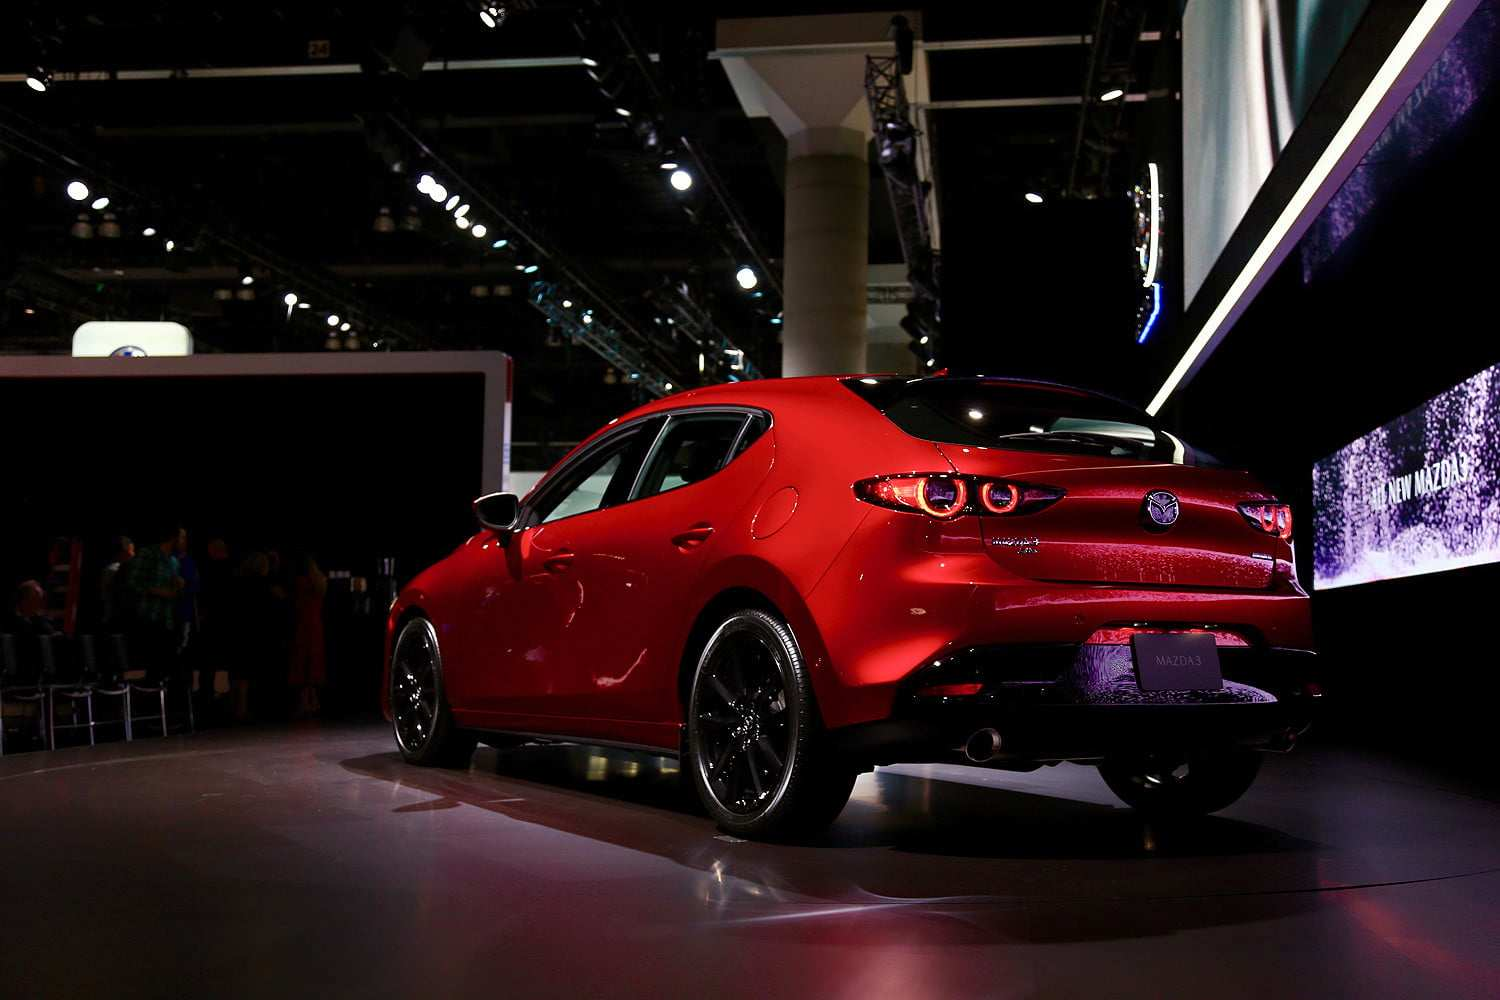 55 Gallery of 2020 Mazda 3 Fuel Economy Images by 2020 Mazda 3 Fuel Economy